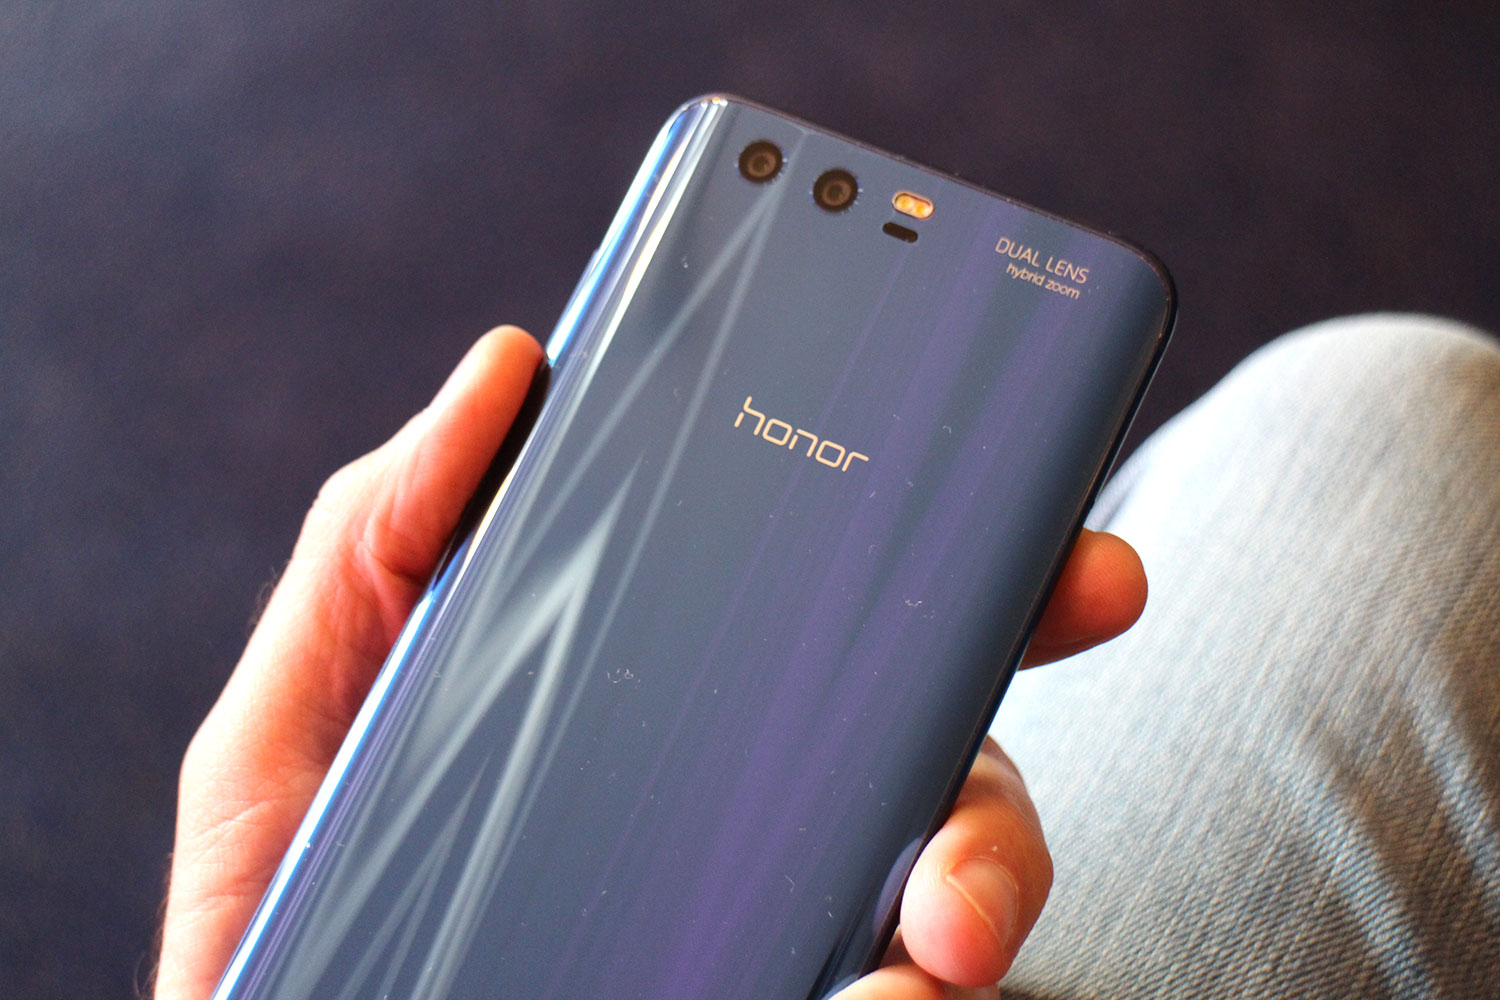 huawei honor v10 price in india, specs, latest news